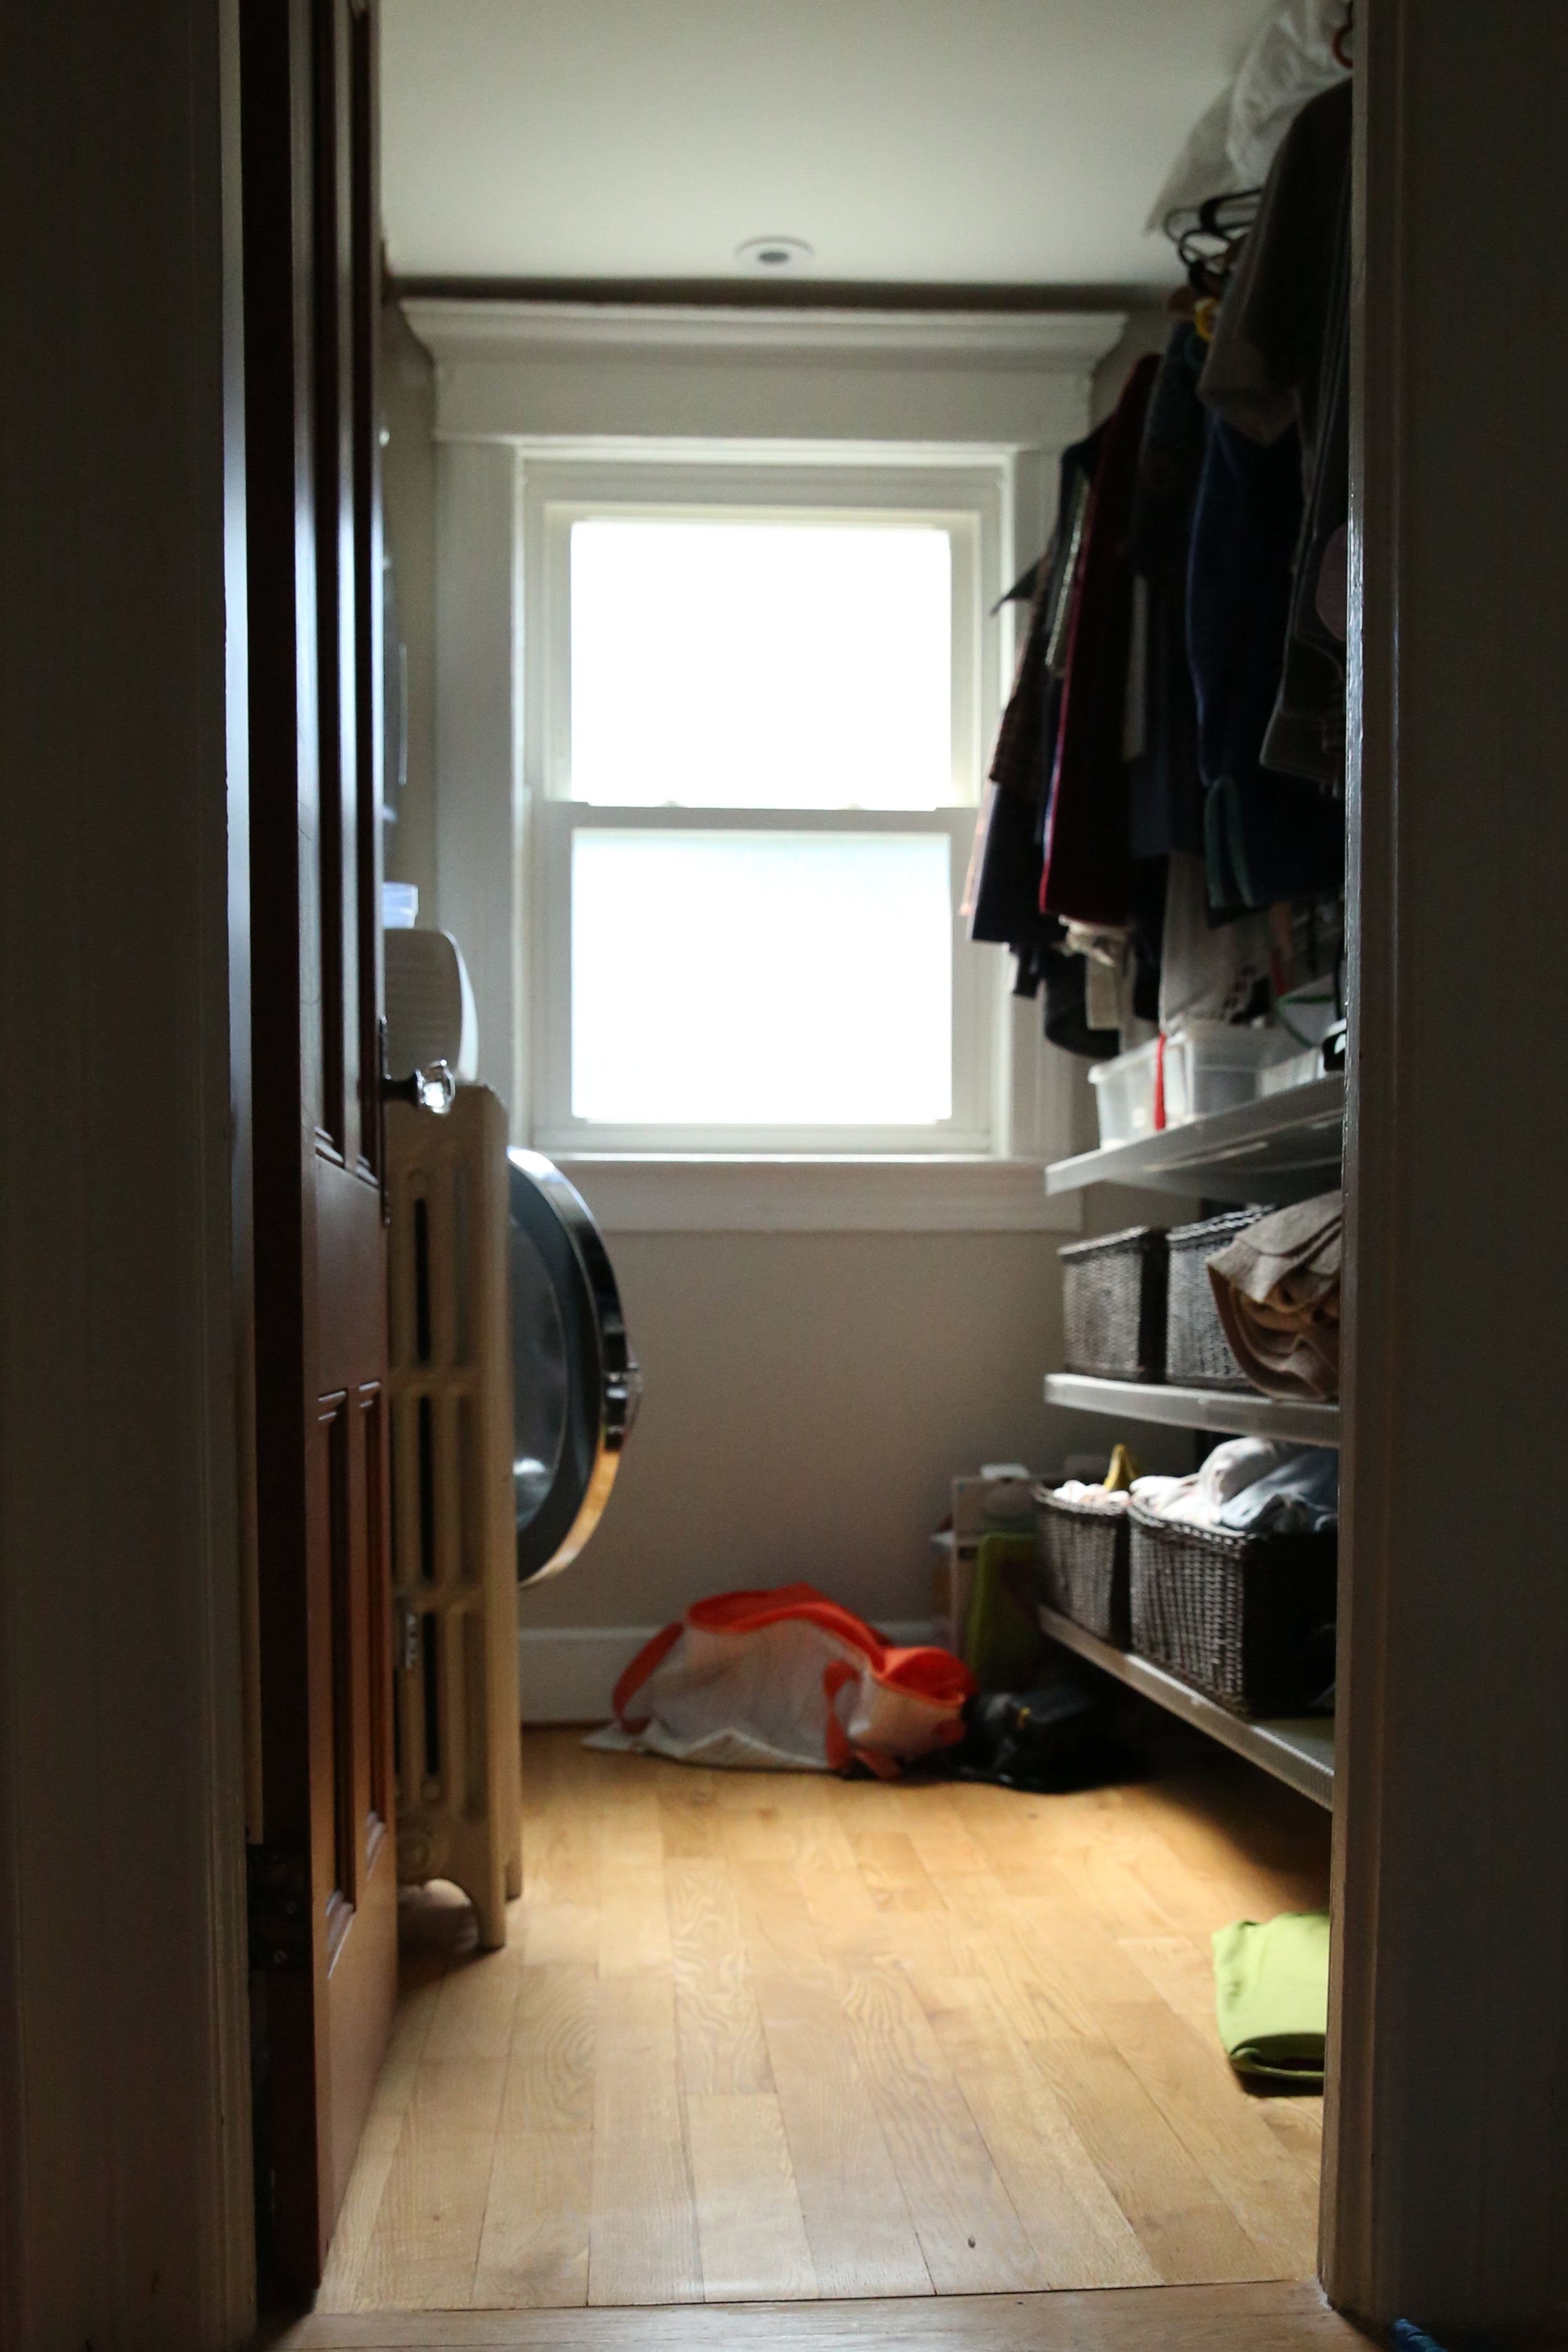 Our little laundry room closet. Just image a frantic Asian women kneeling on the floor with mounds of bedding and bath towels.